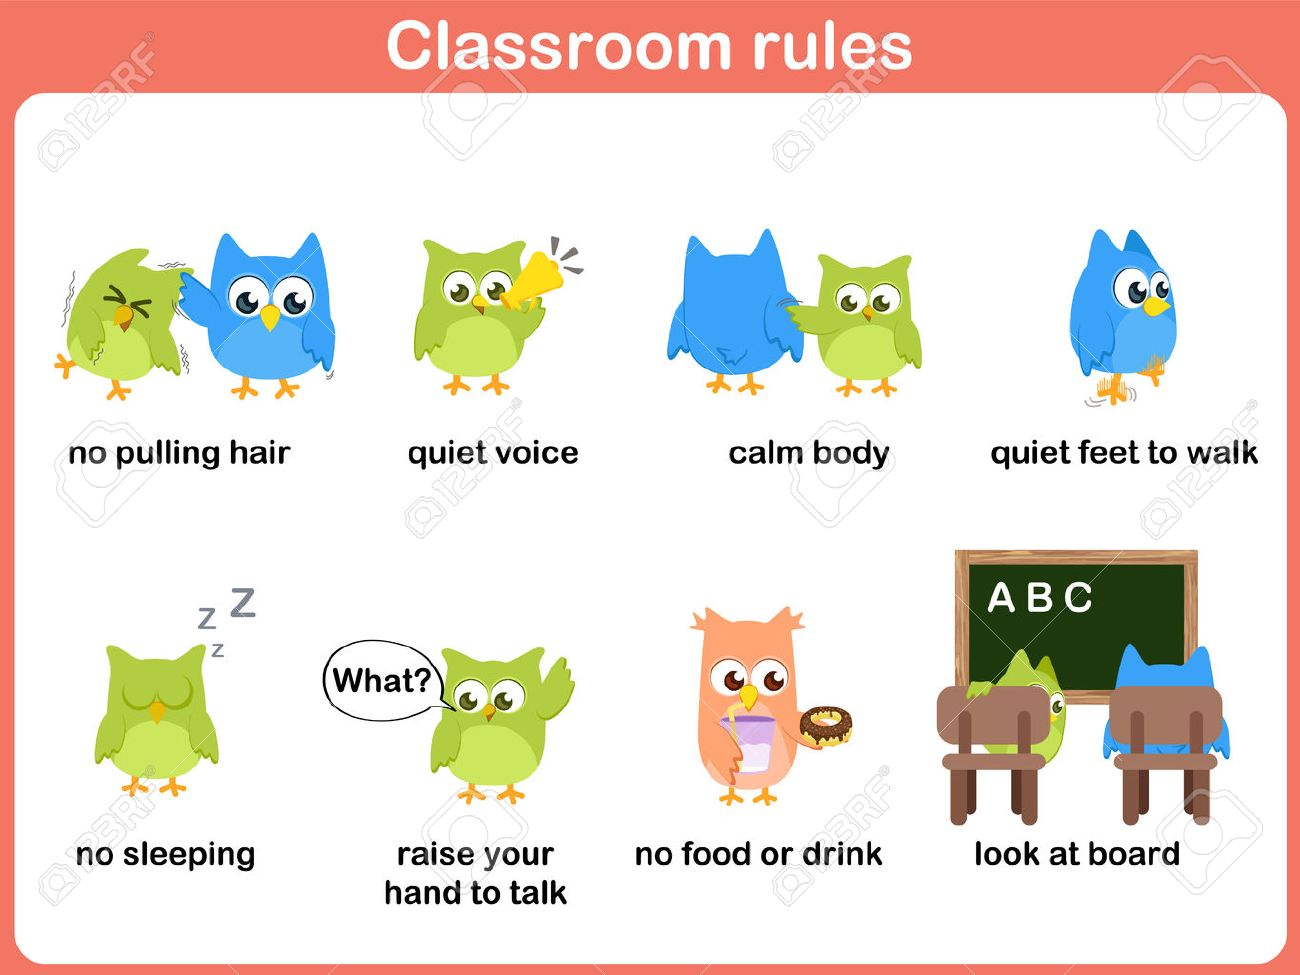 Classroom rules for kids.